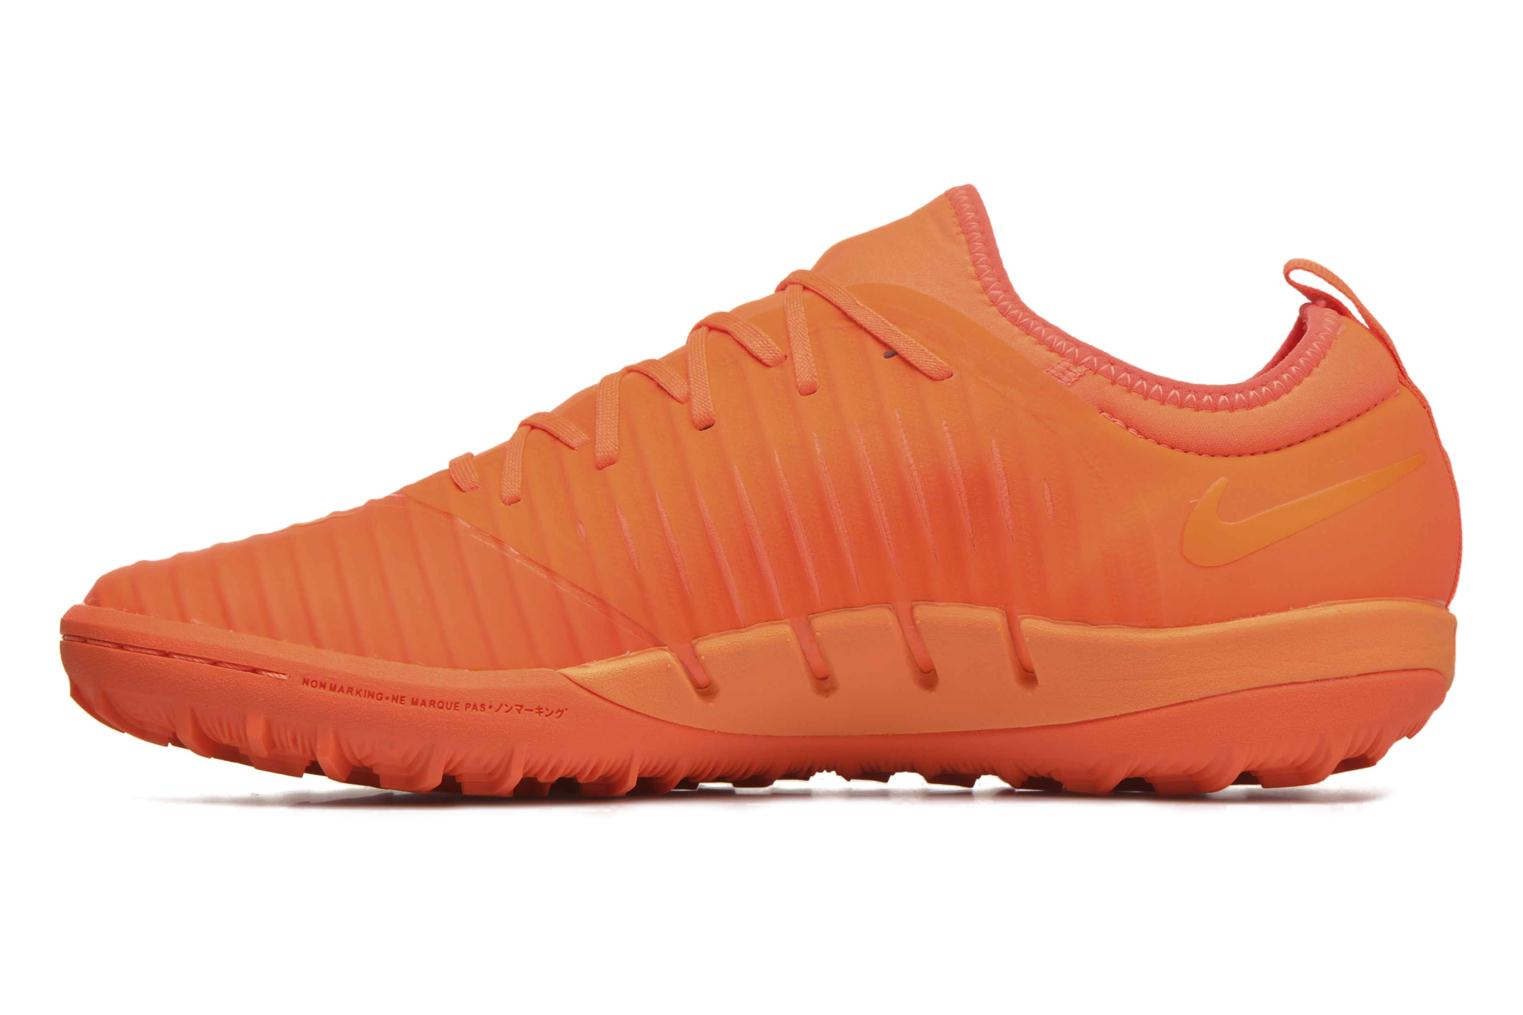 Chaussures de sport Nike Mercurialx Finale Ii Tf Orange vue face